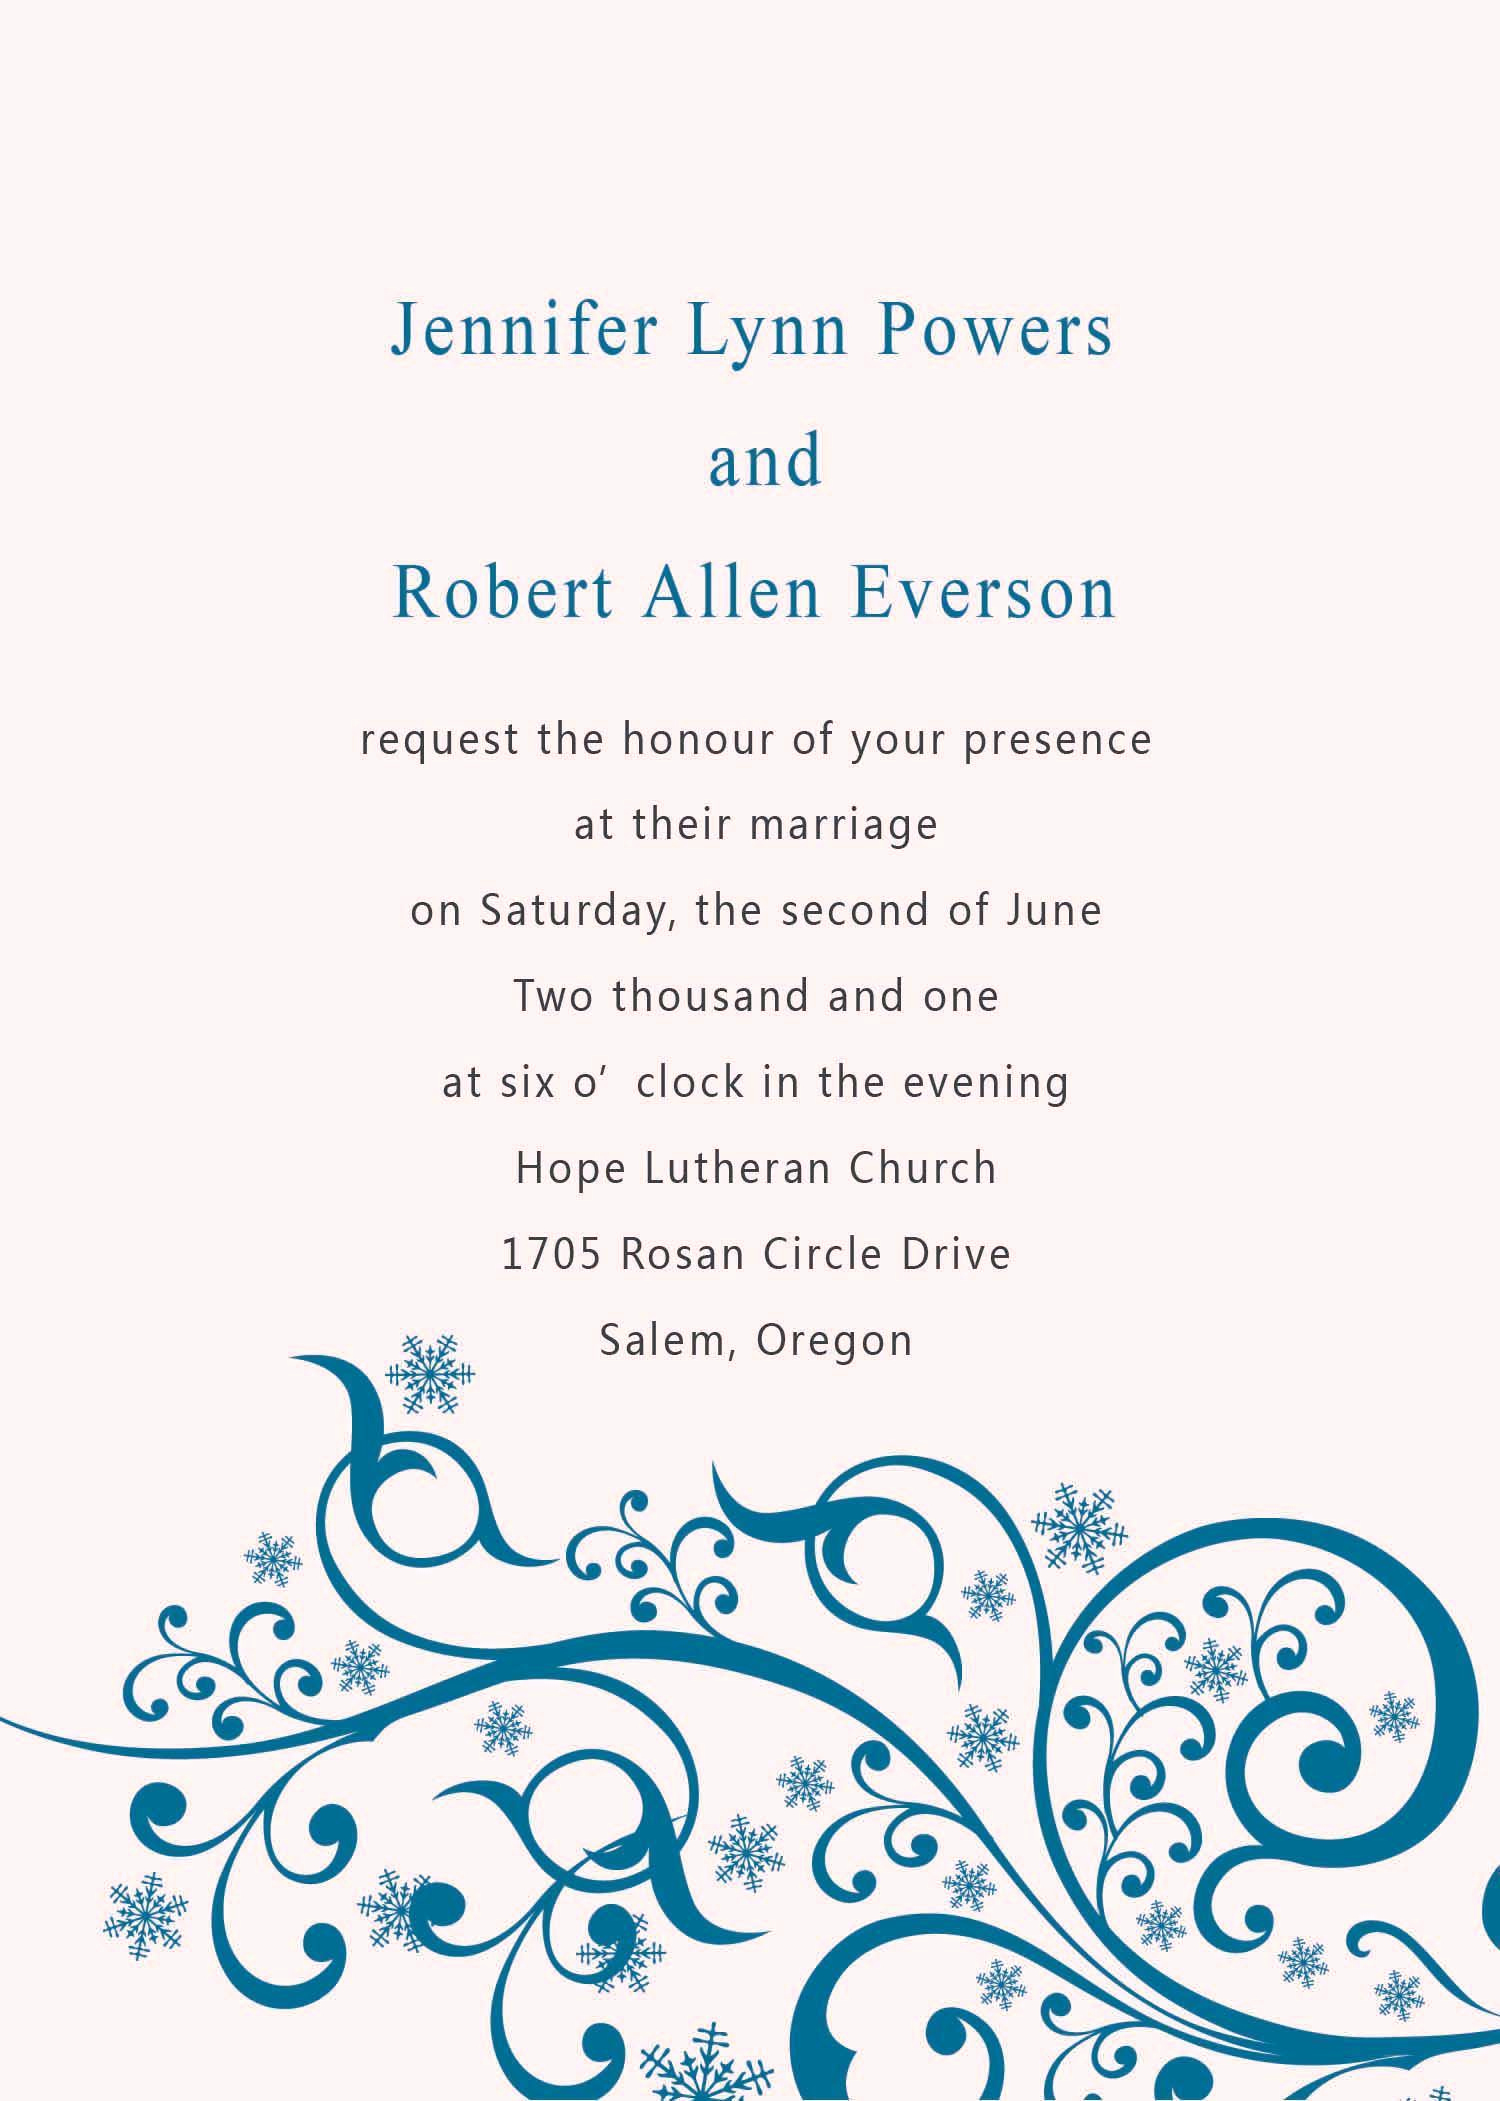 Wedding Invitation Templates Word Fresh Wedding Invitation Templates Word Wedding Invitation